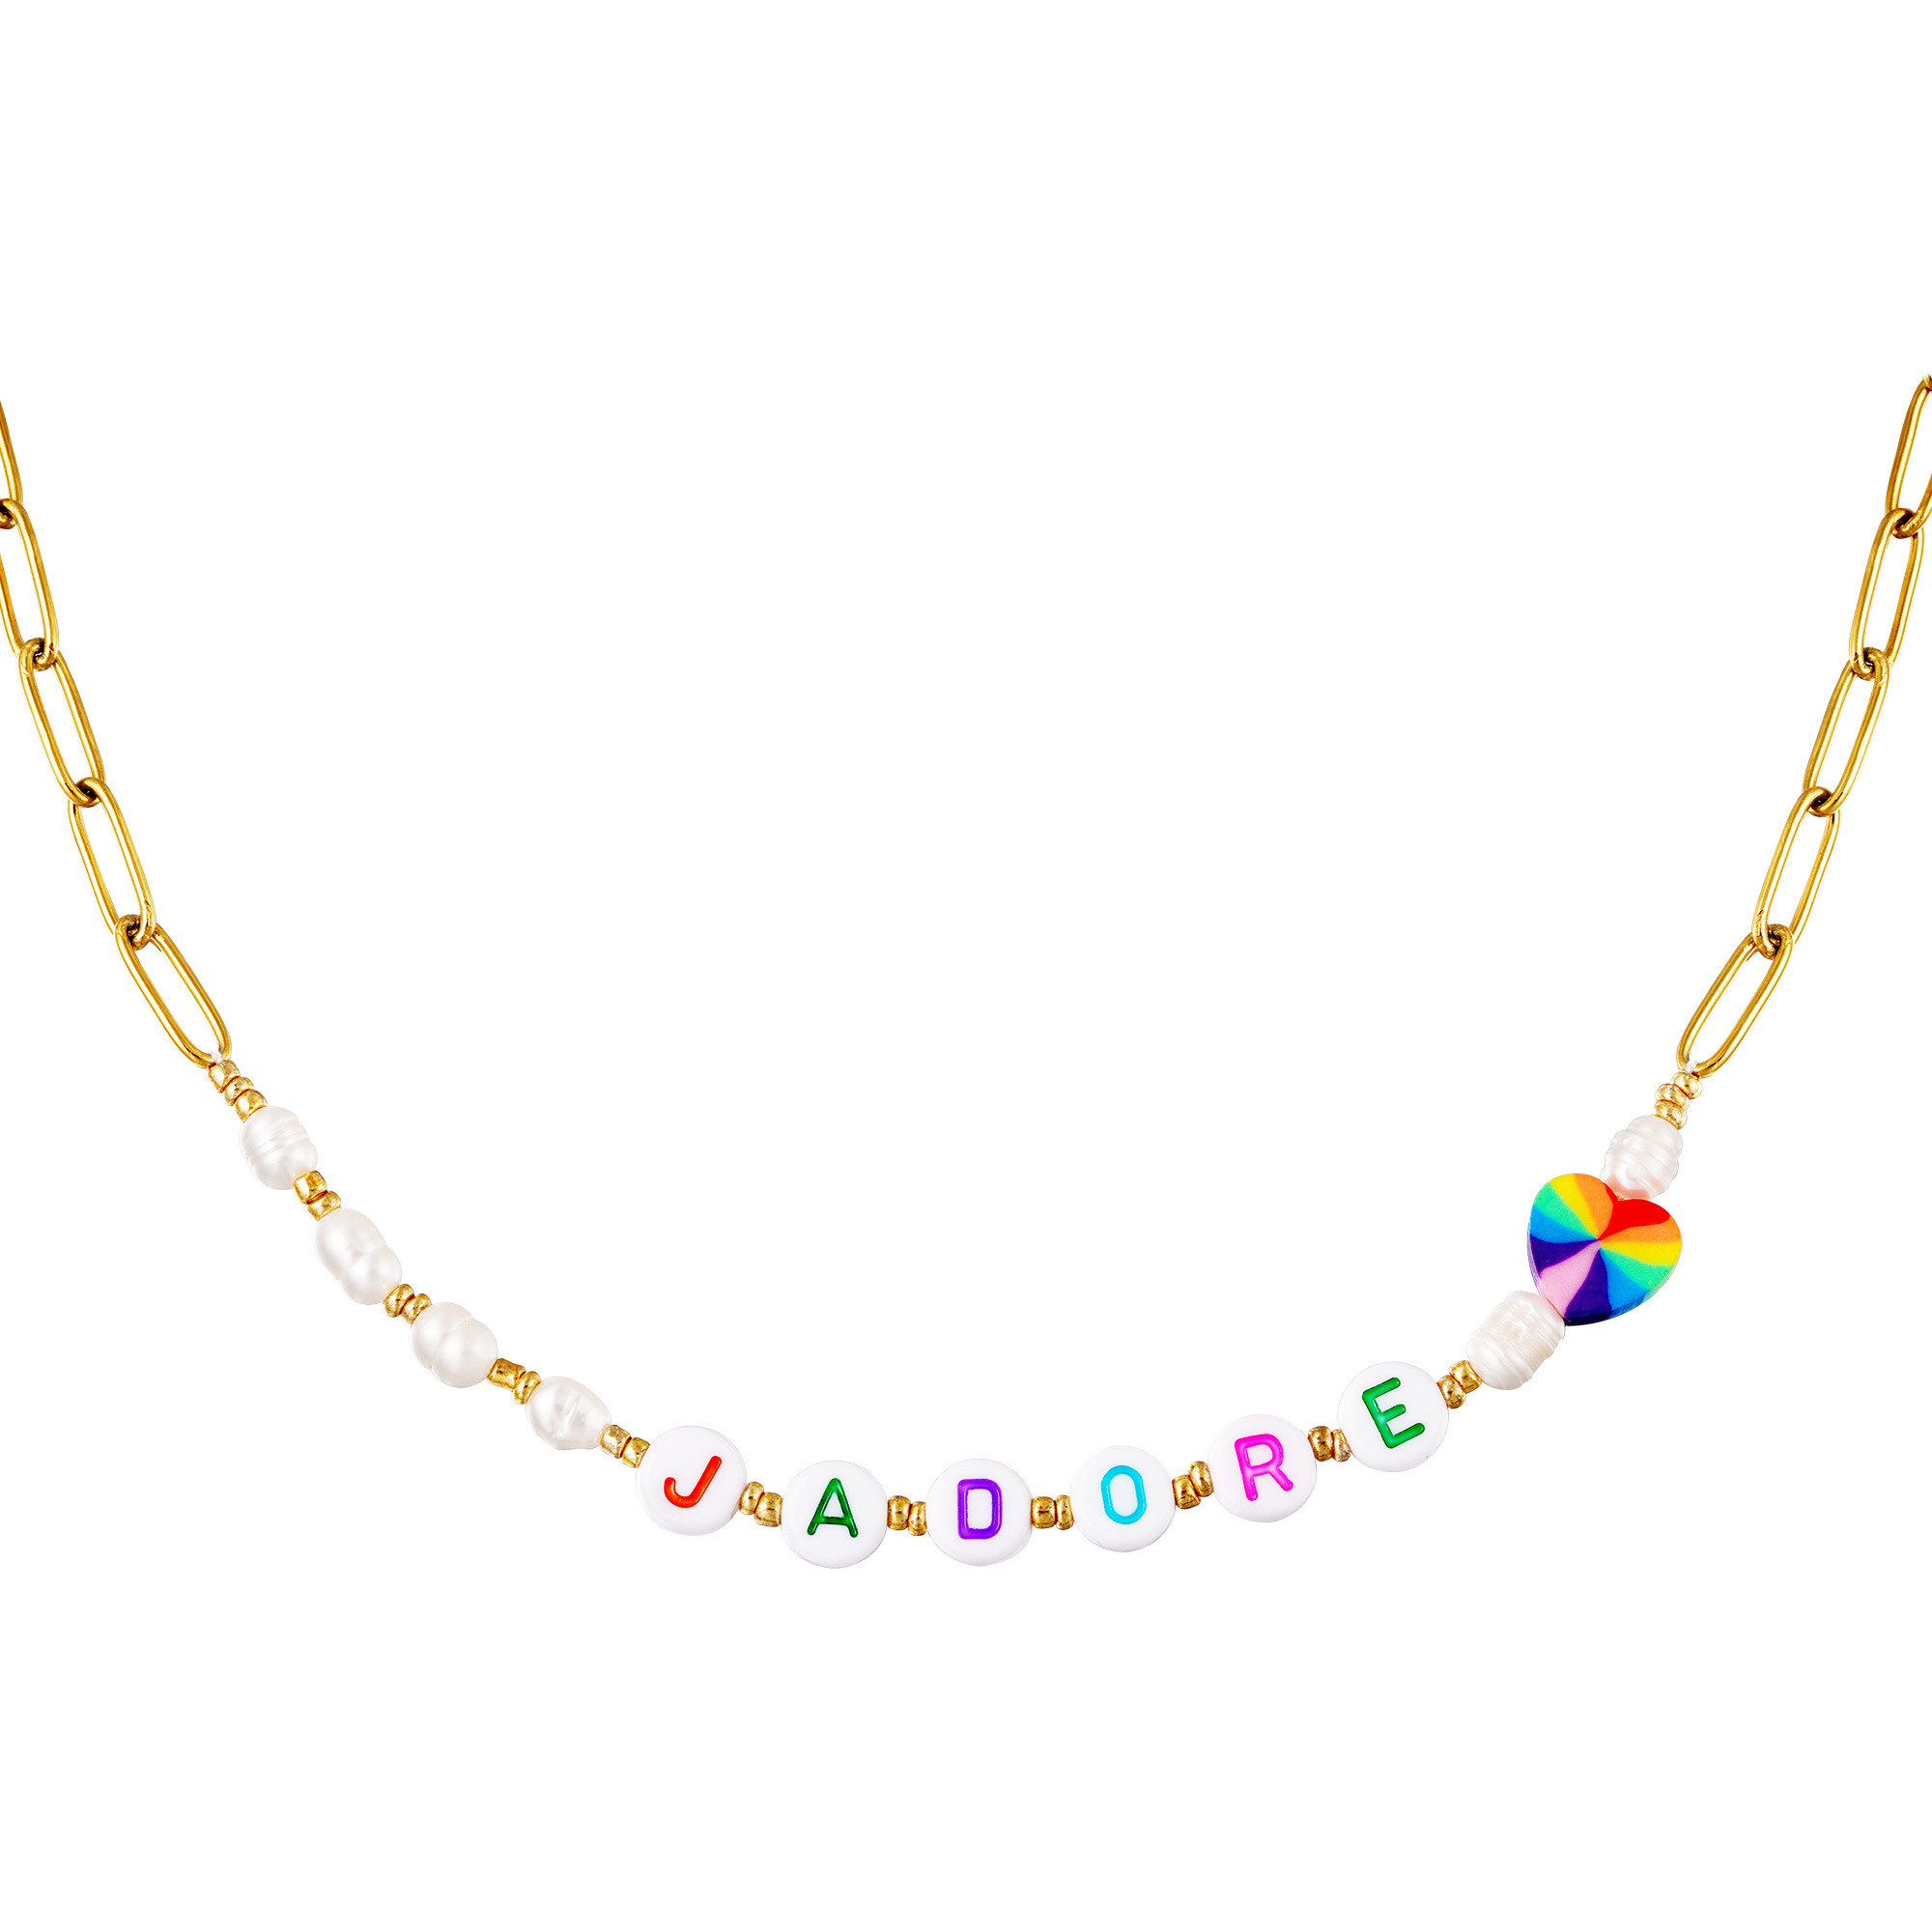 Stainless steel necklace J'adore